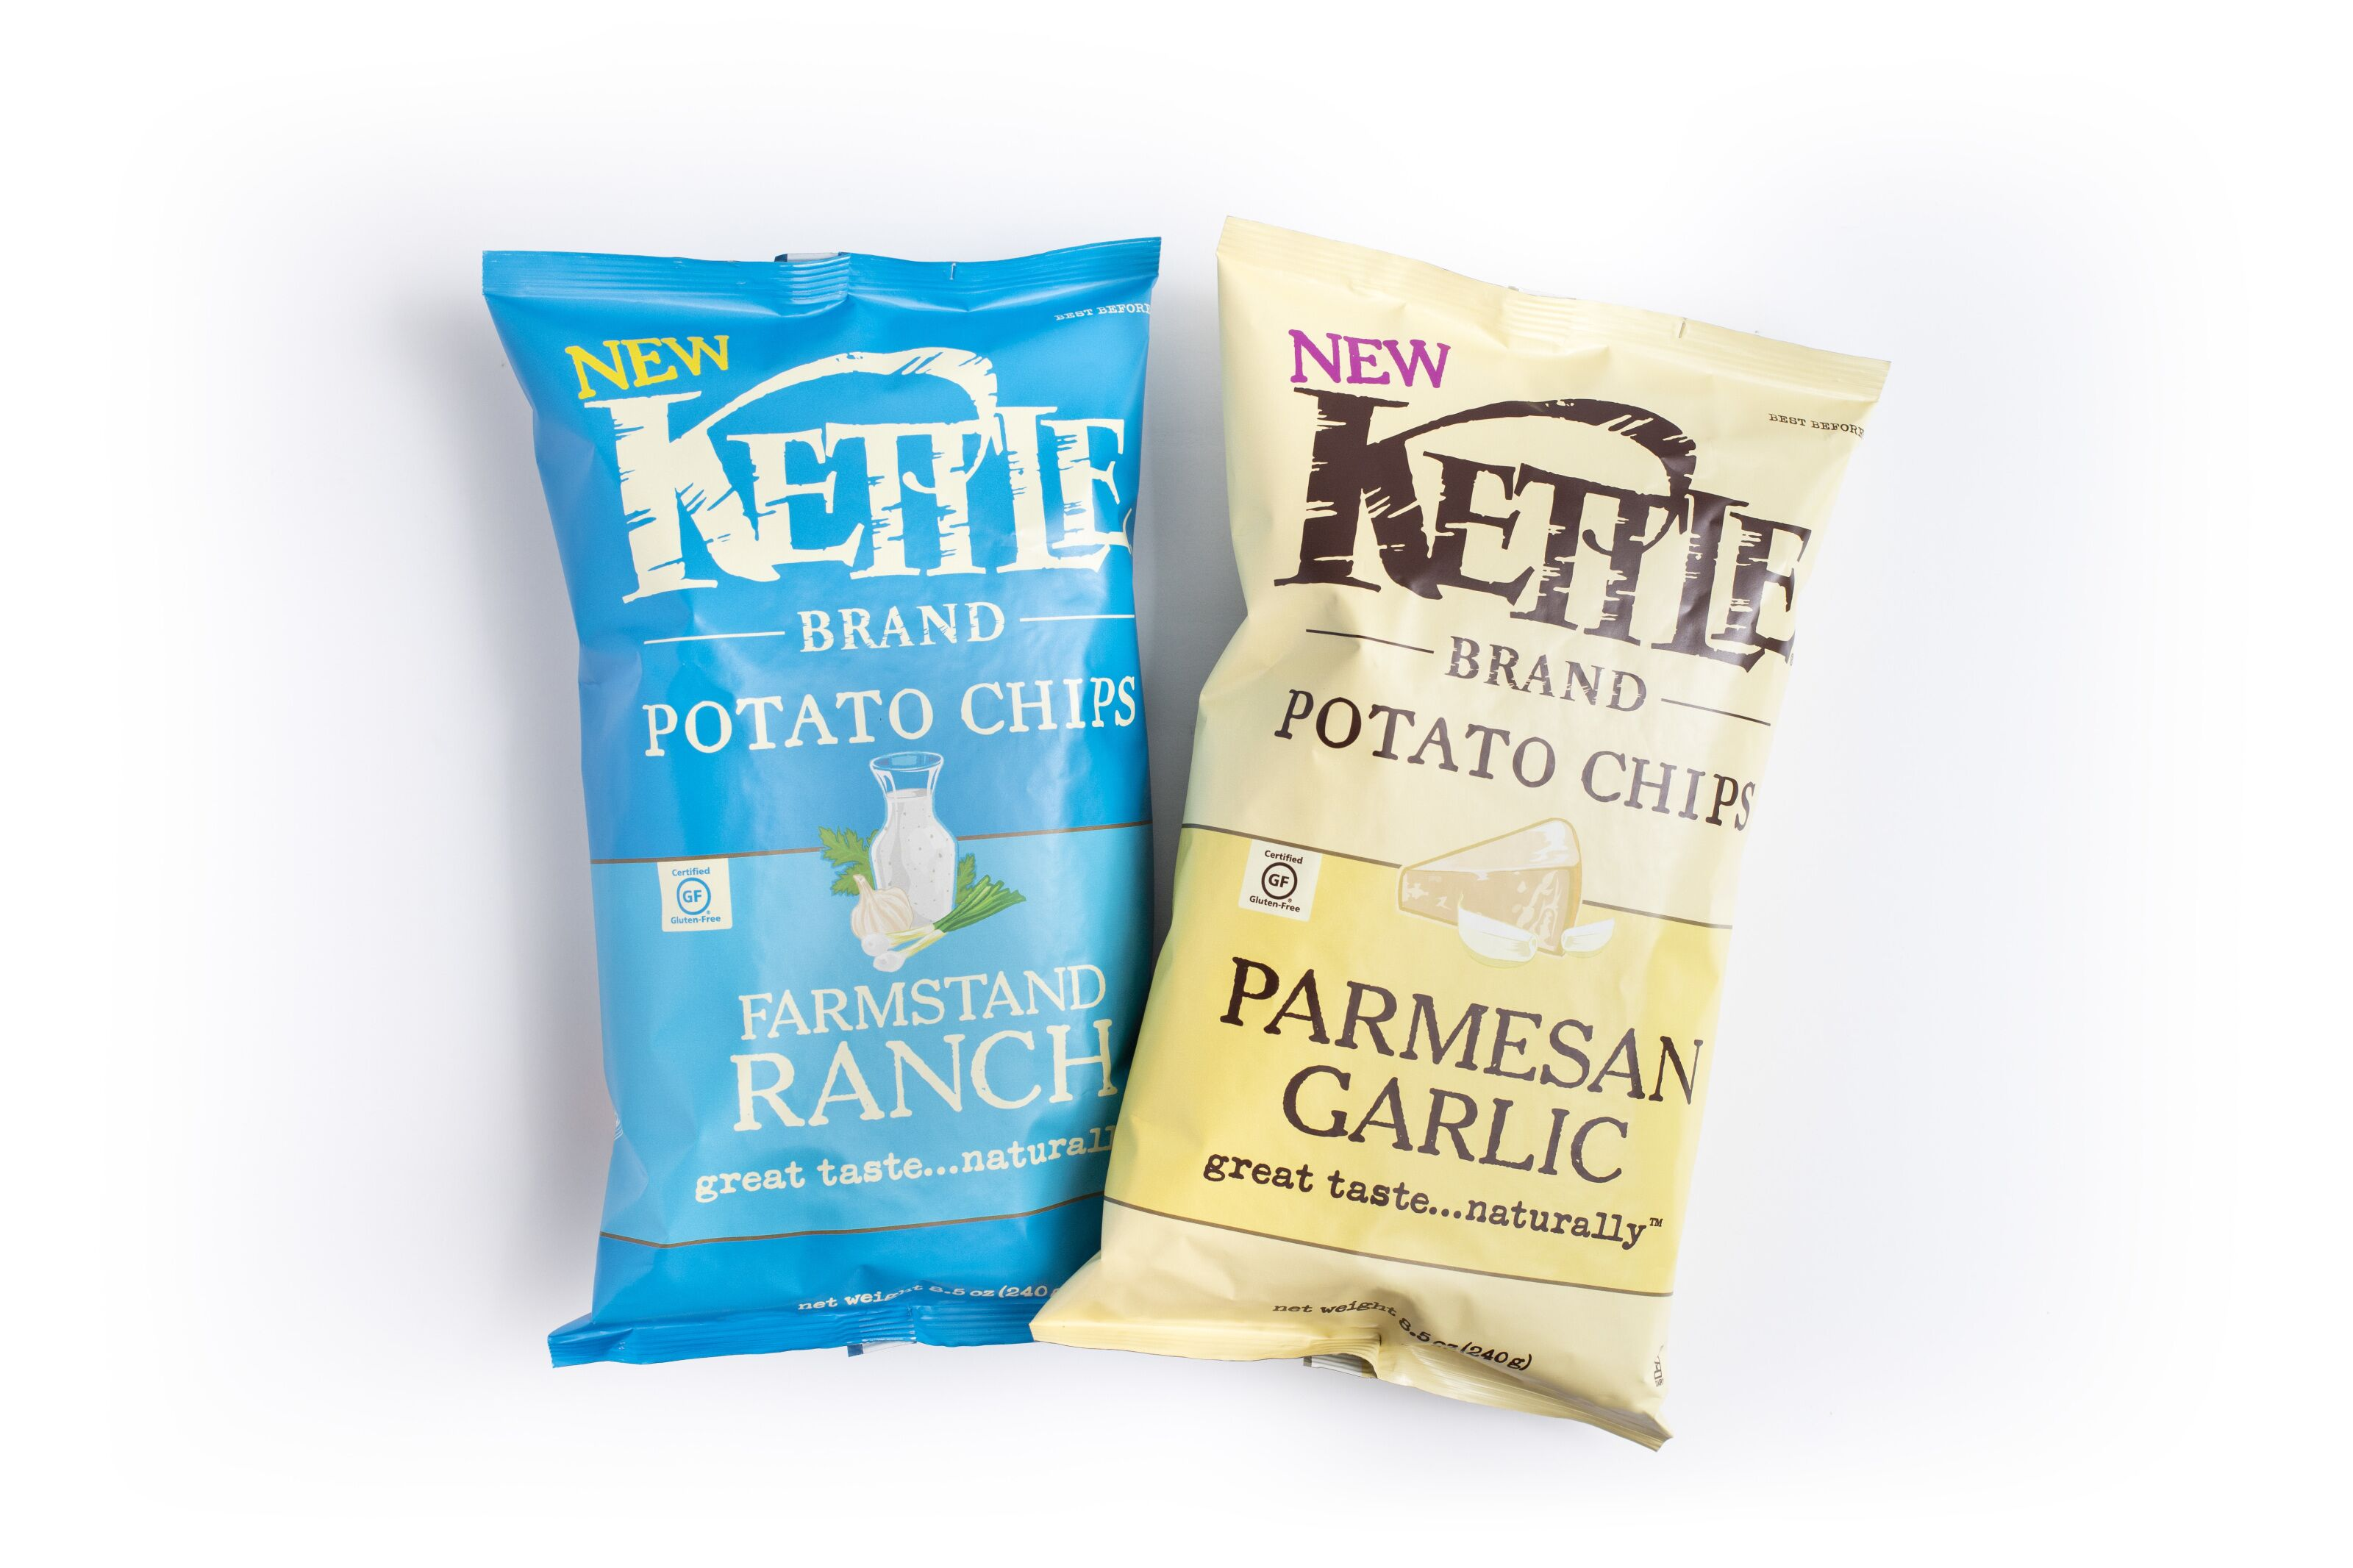 New Kettle Brand chips embrace big, bold crave-worthy flavors